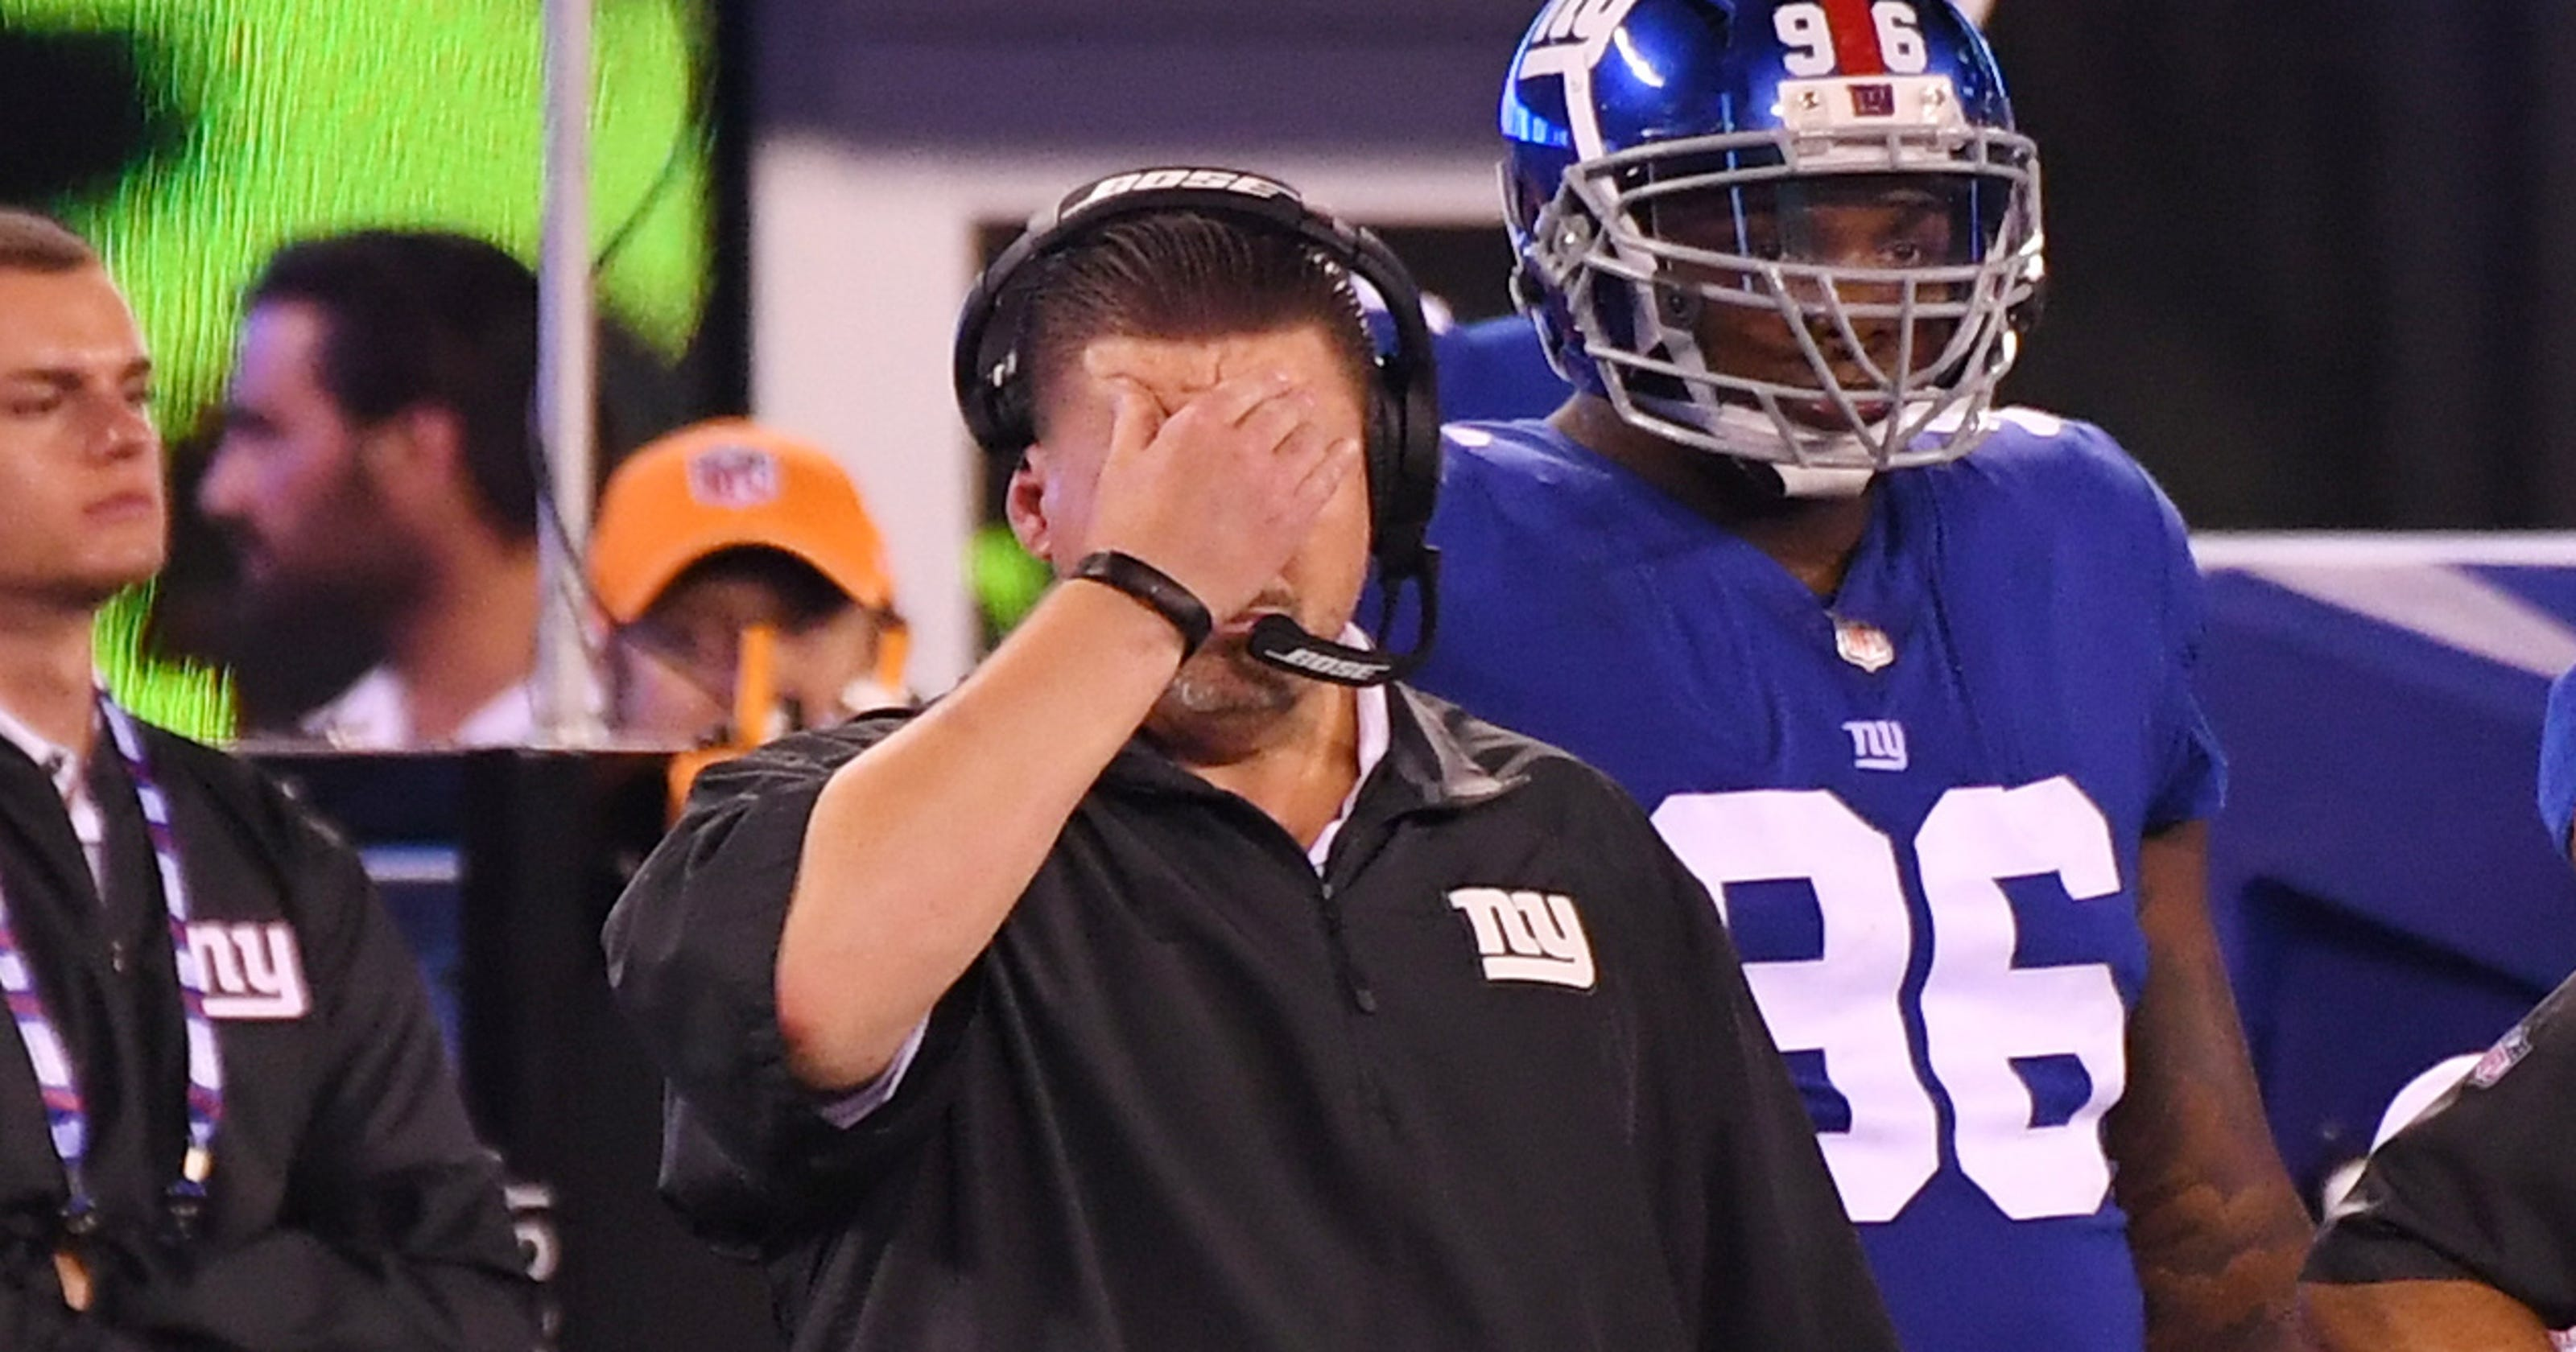 Giants coach Ben McAdoo blames Eli Manning for gaffe in loss to Lions 4c578a30f